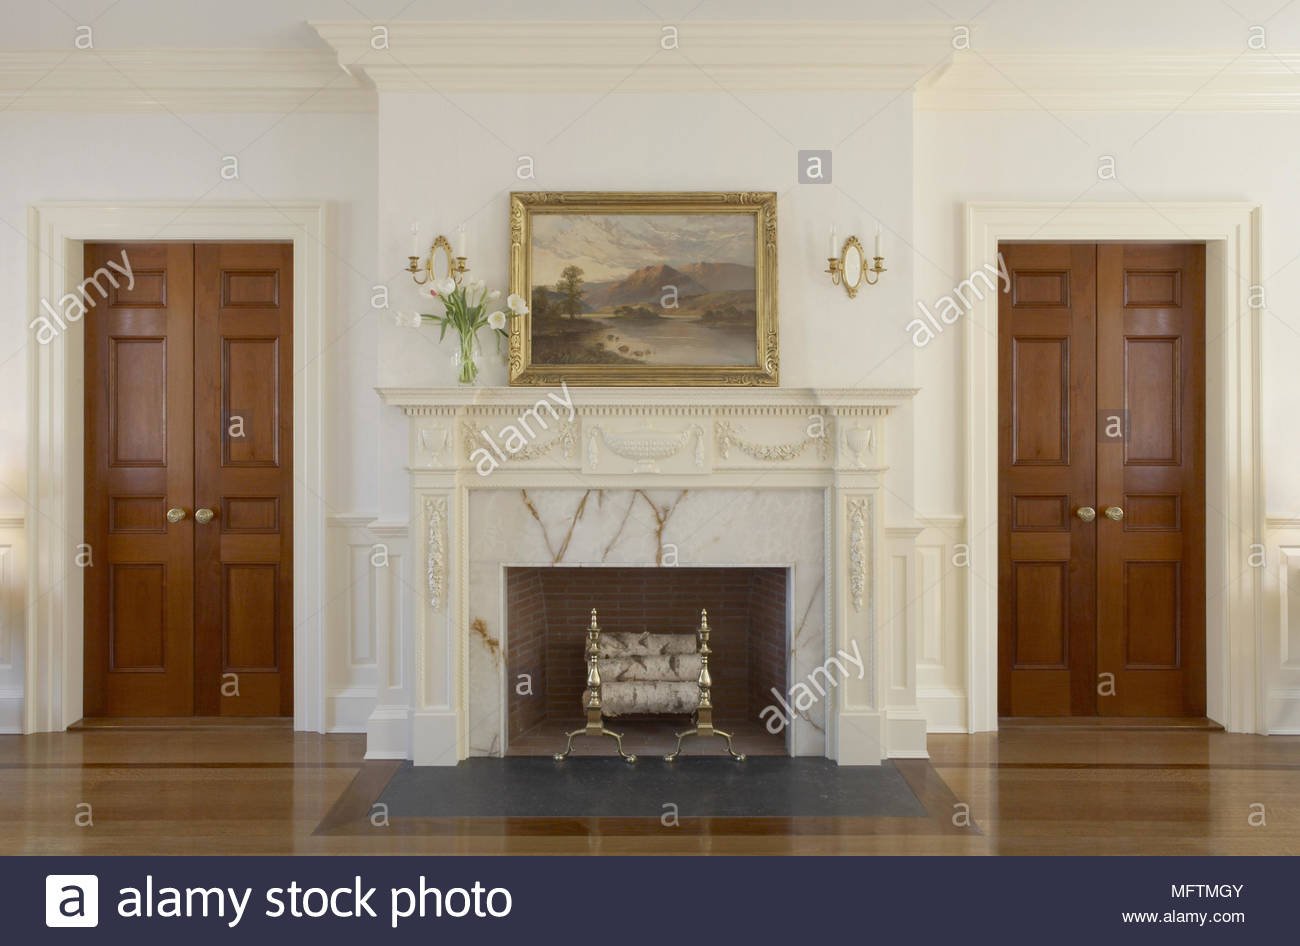 Decorated Christmas Fireplace On A Brick Wall Stock Photo Image Traditional Fireplace Stock Photos & Traditional Fireplace